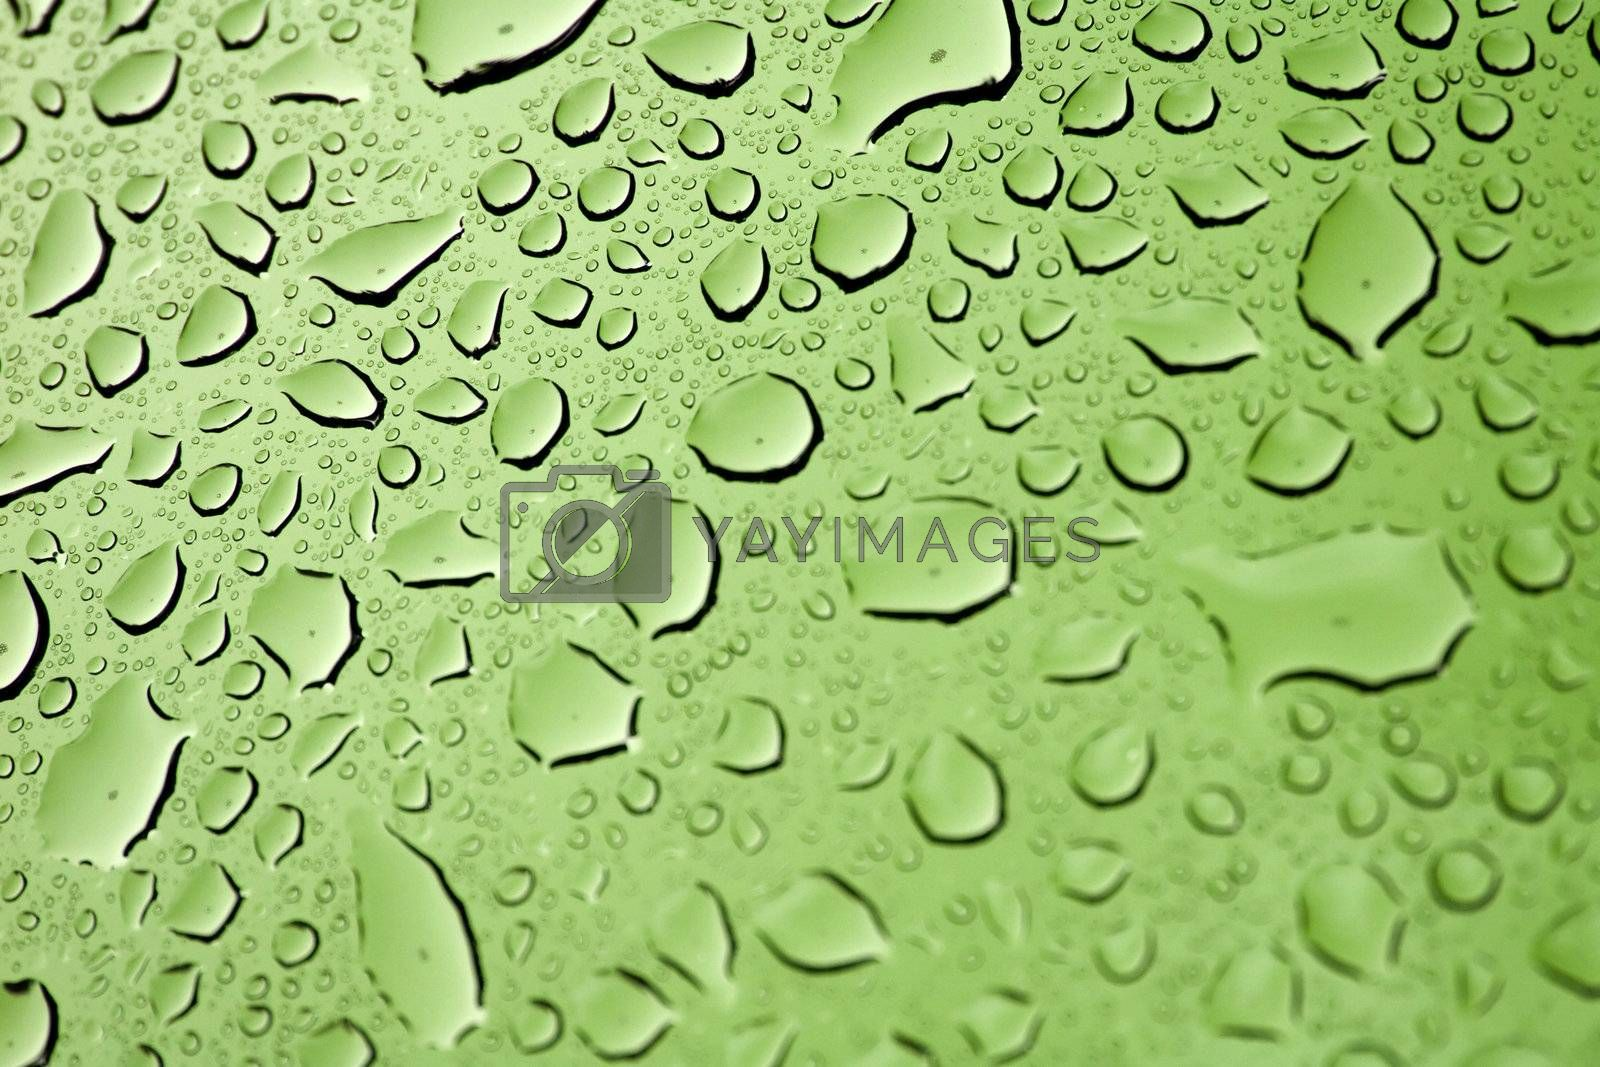 Water Droplets by graficallyminded